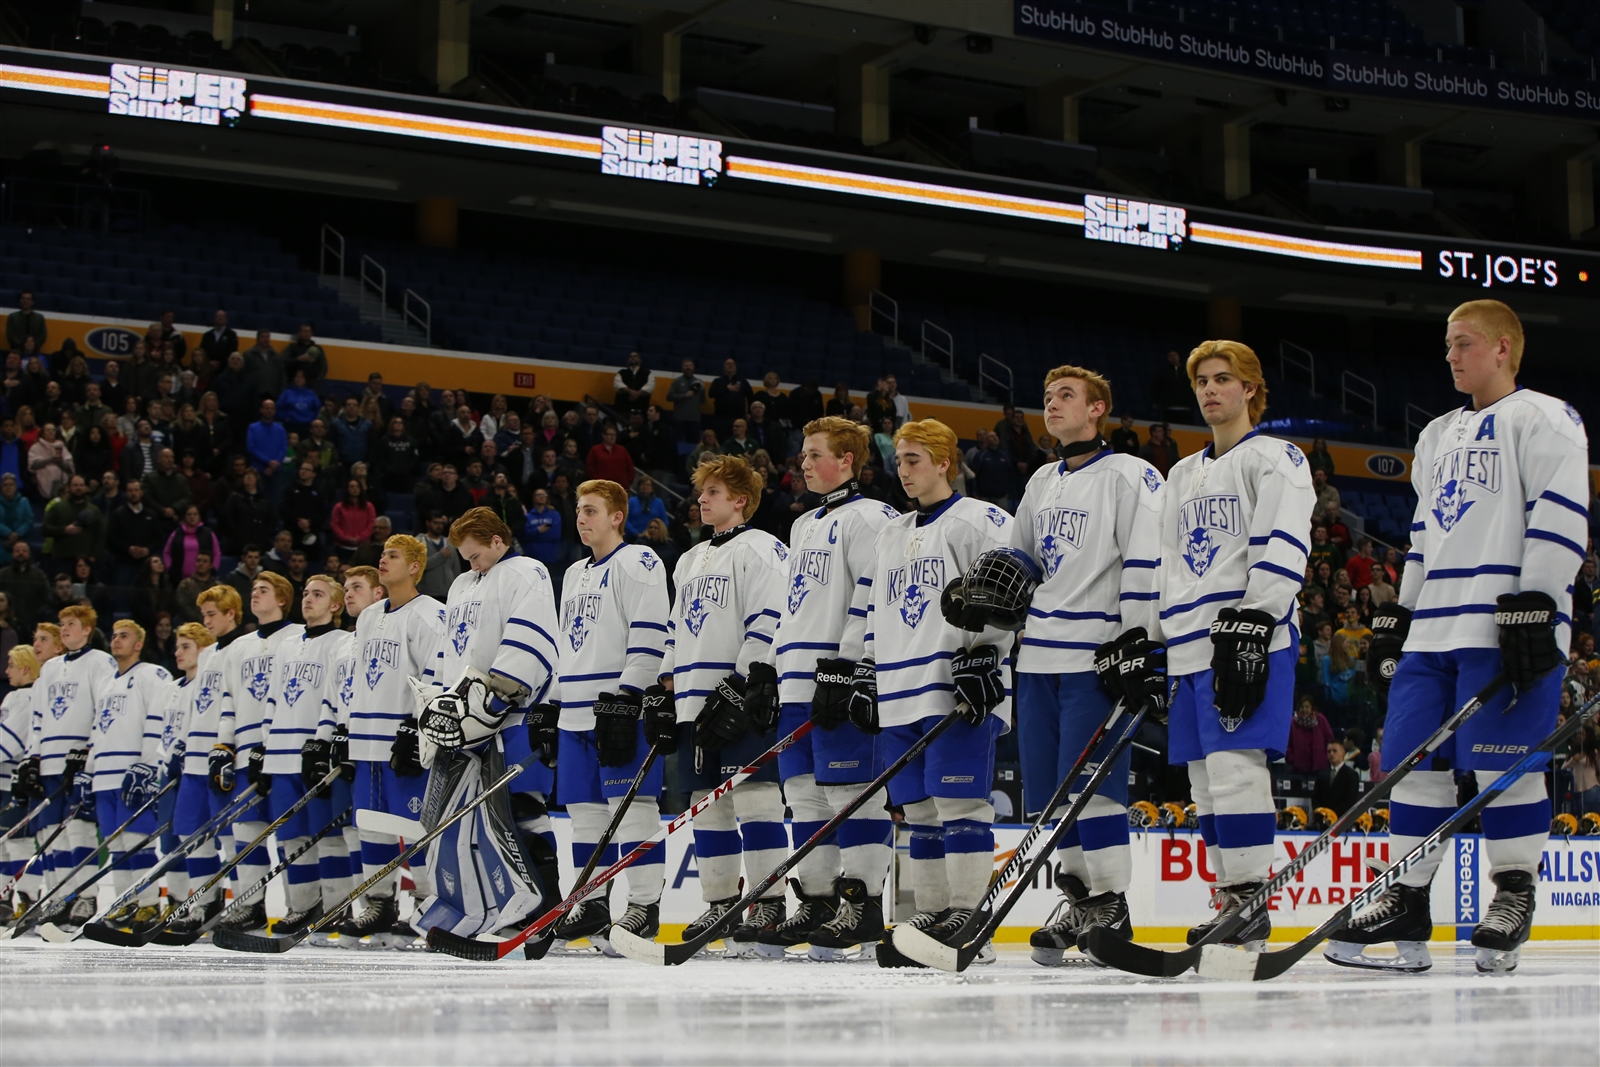 Kenmore West players stand for the National Anthem prior to playing West Seneca East for the Small School Section VI hockey championship.